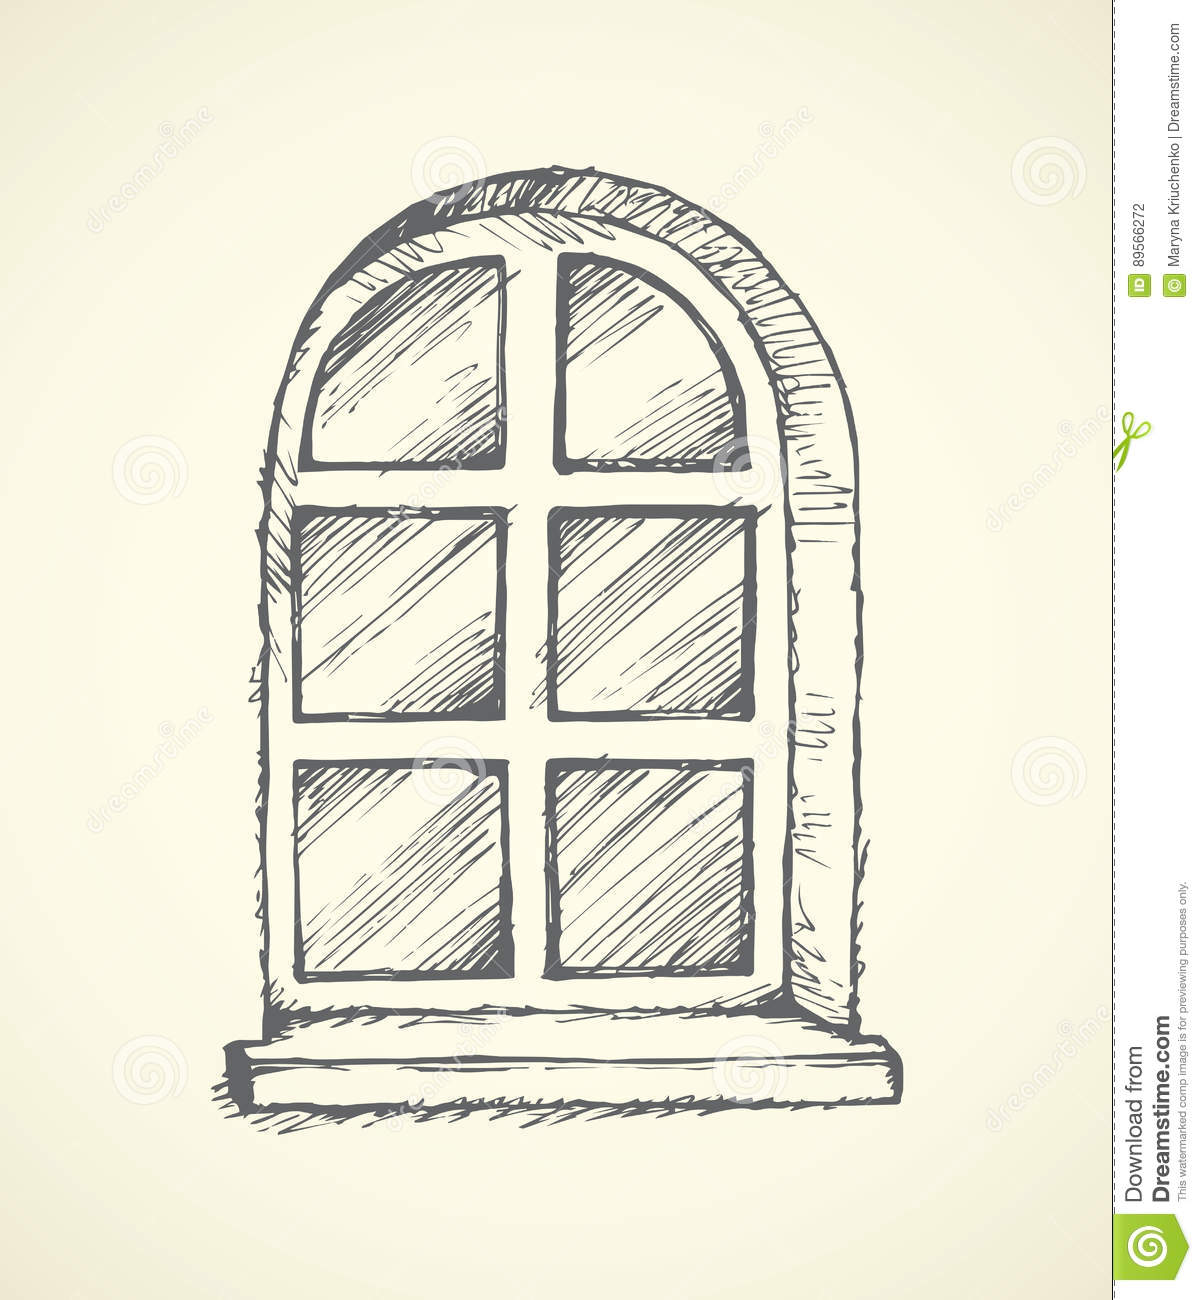 It's just a photo of Superb Drawing On Window